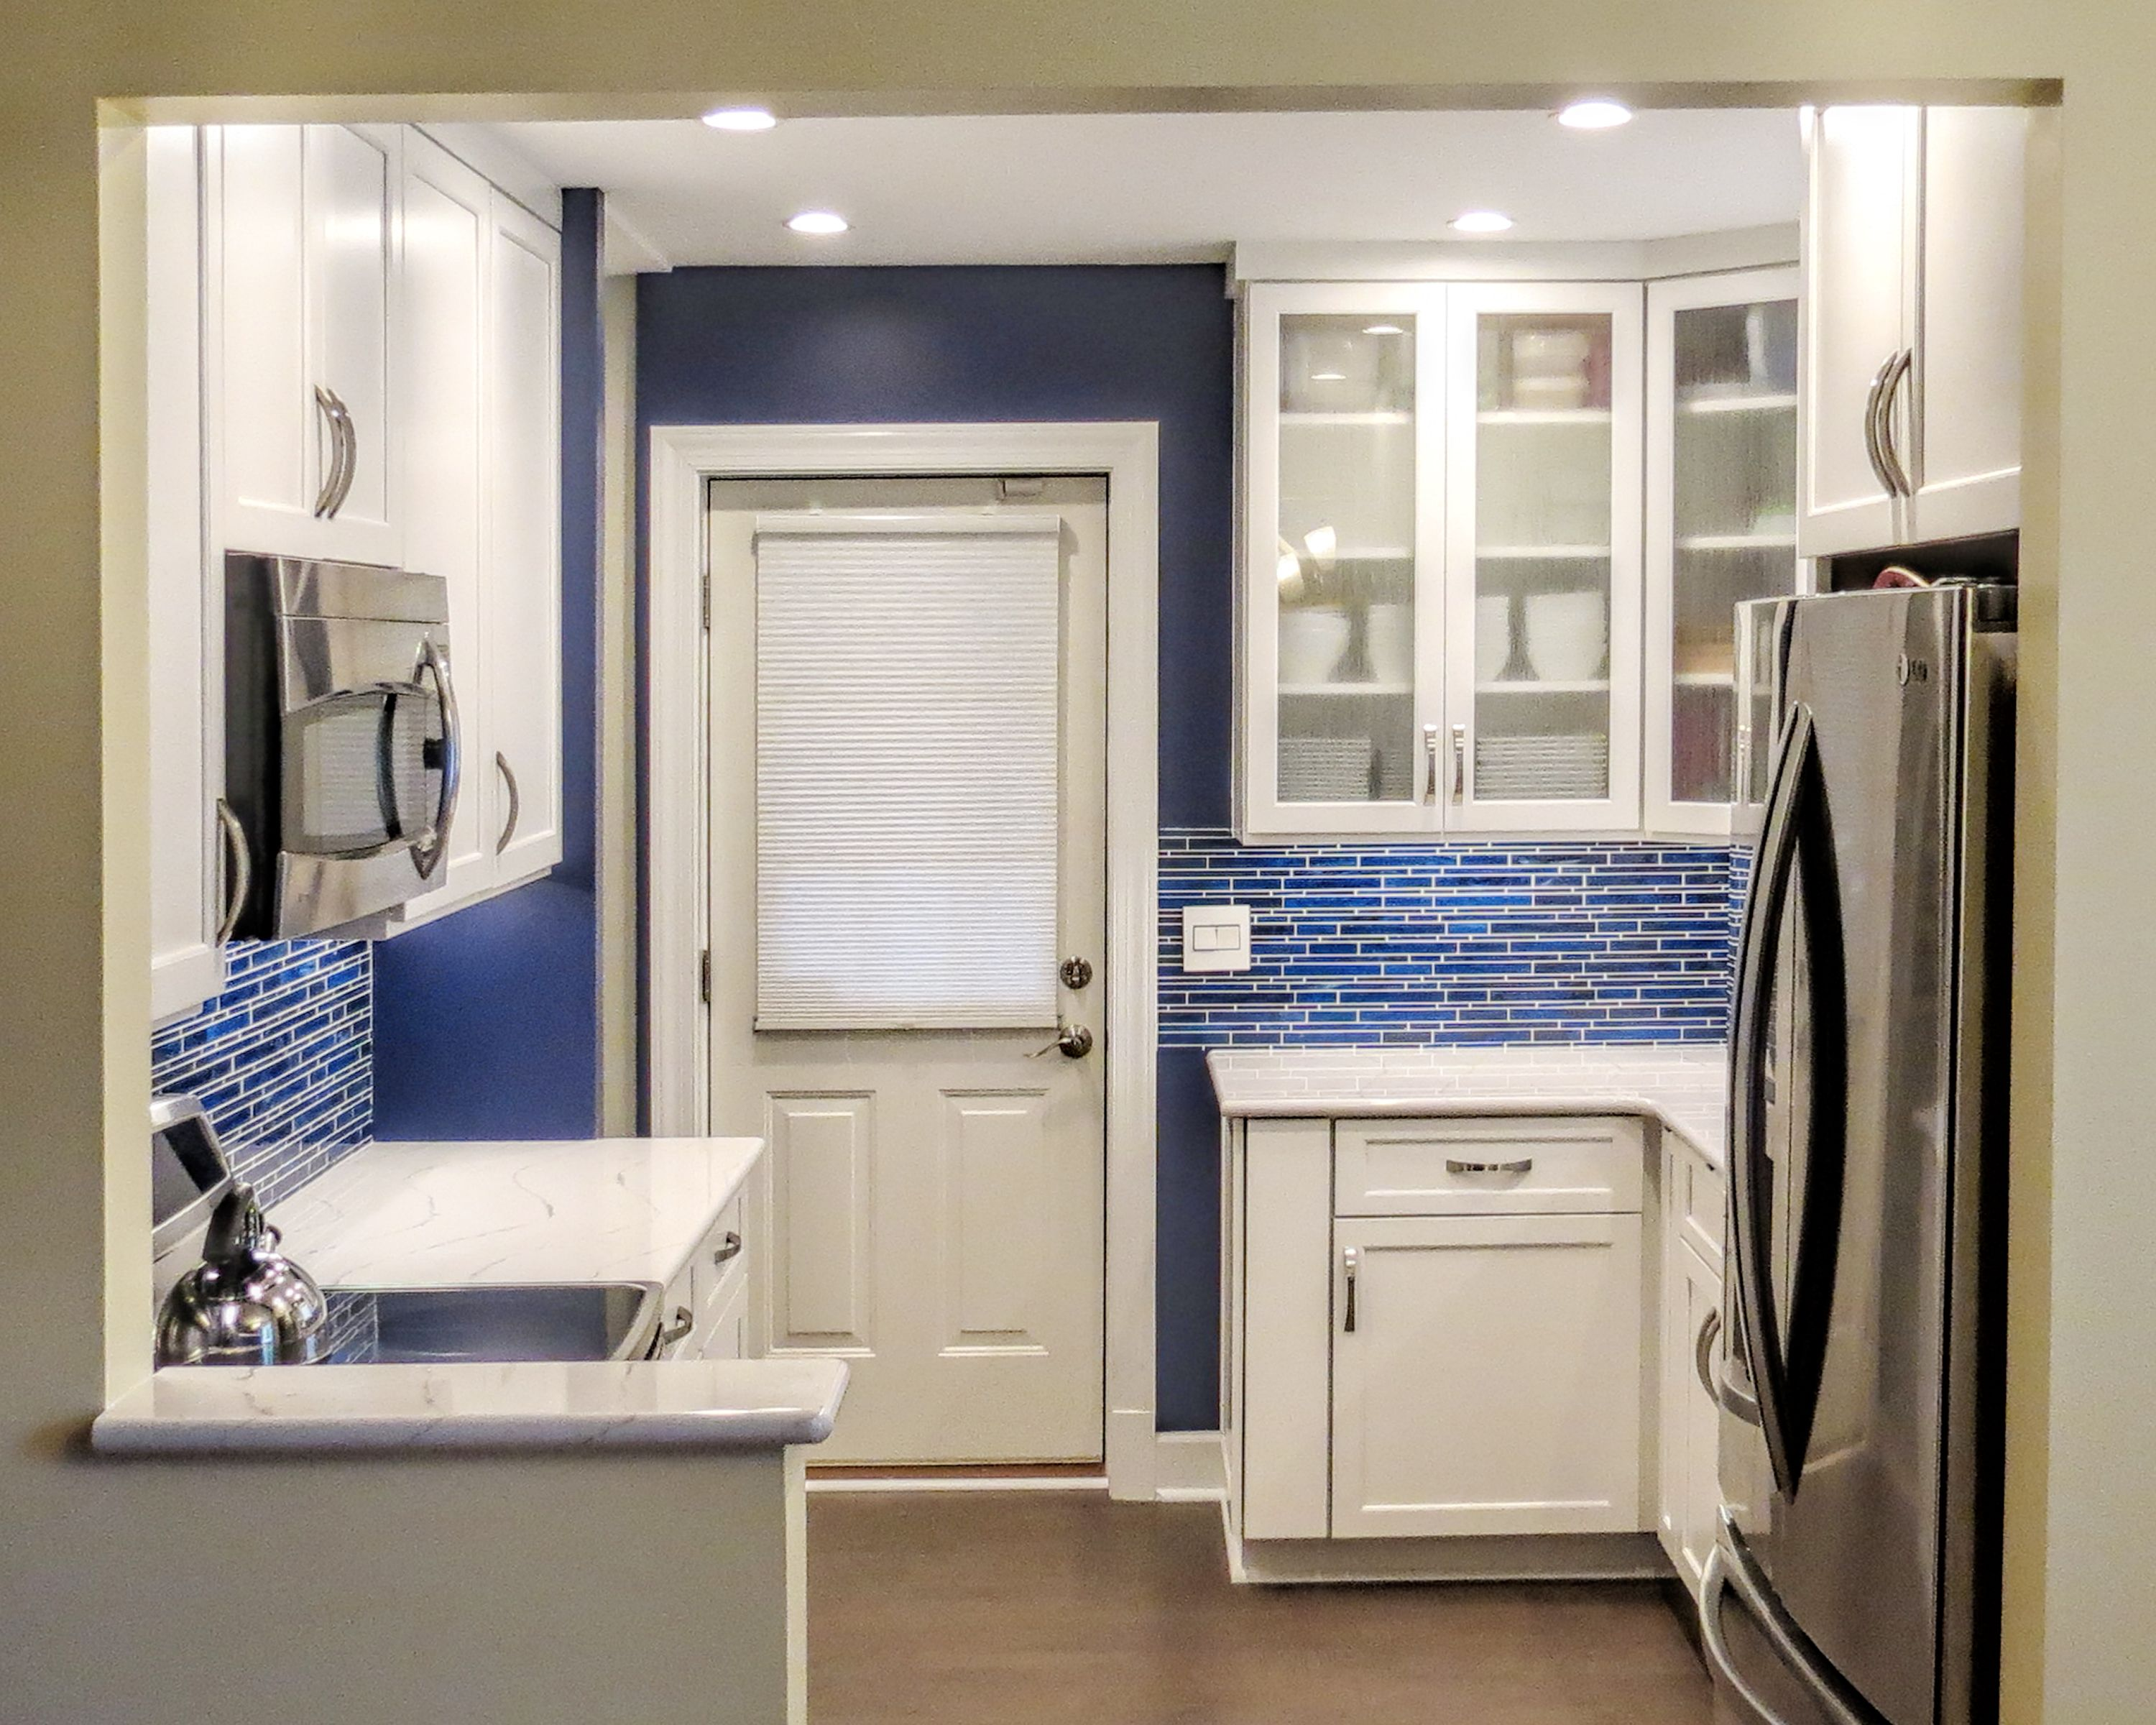 kitchen remodeling silver spring md outdoor prices award of merit remodel addition under 50 000 mangan group architects project v w